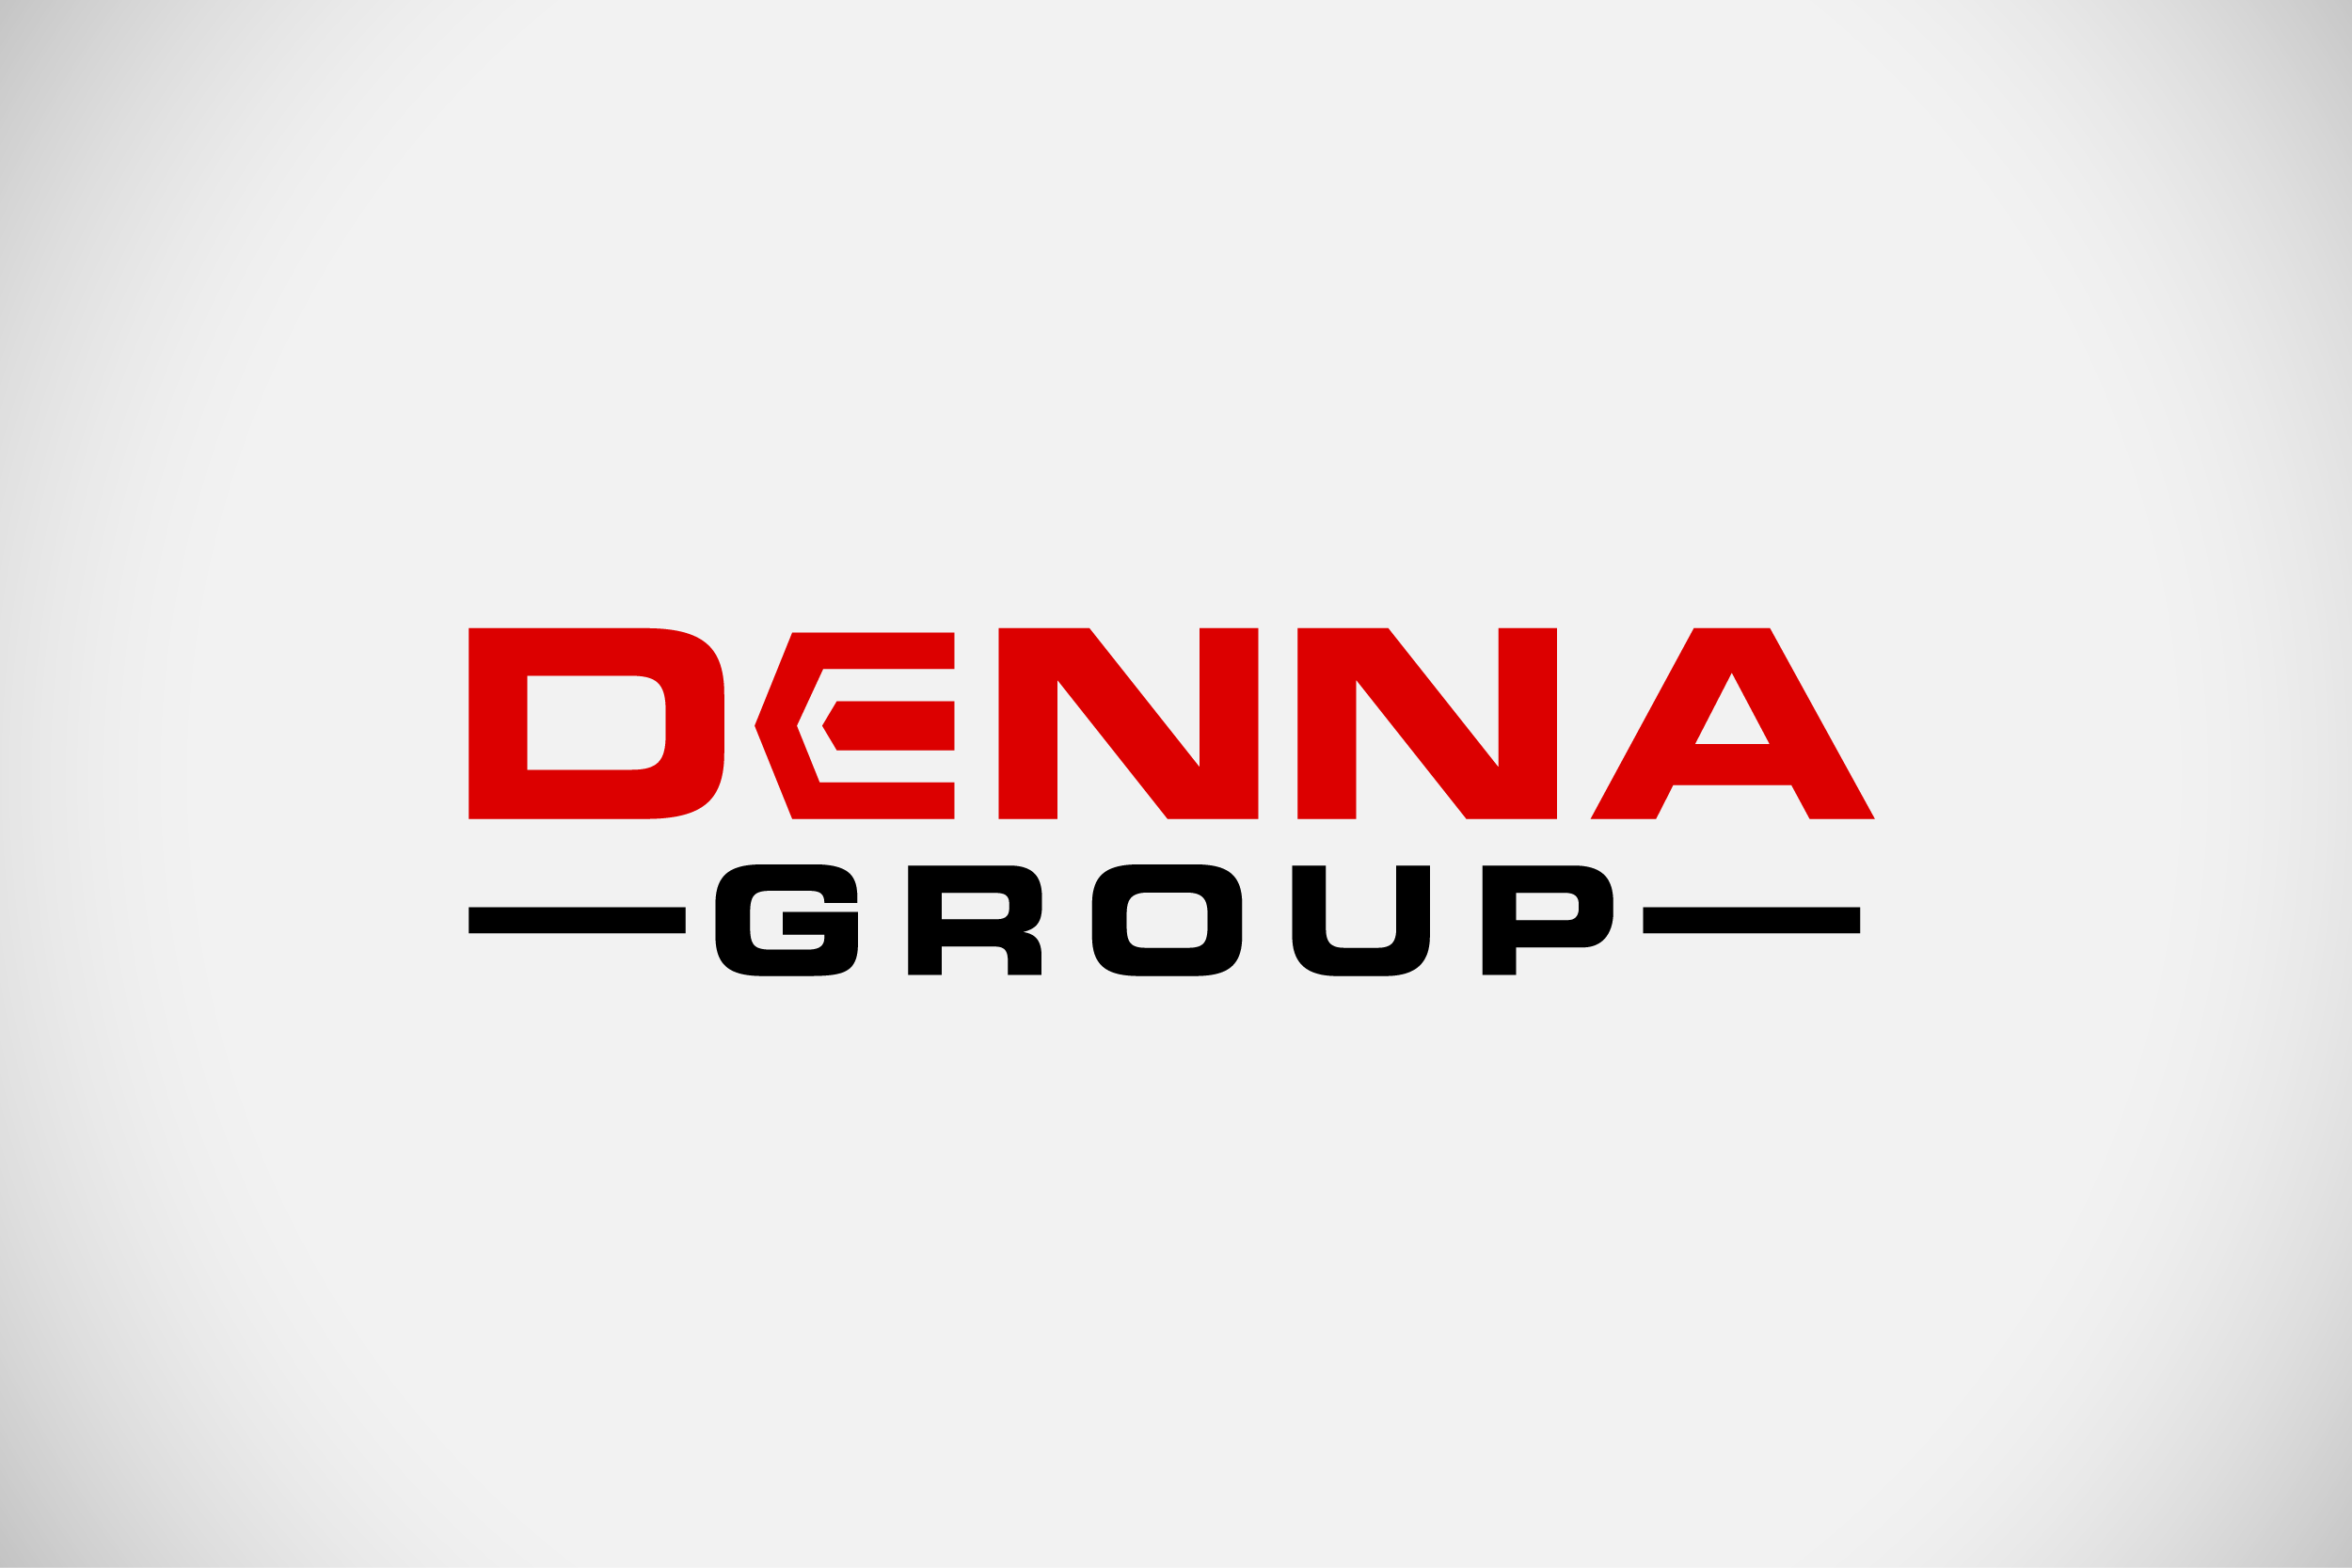 Logo Design by Private User - Entry No. 304 in the Logo Design Contest Denna Group Logo Design.